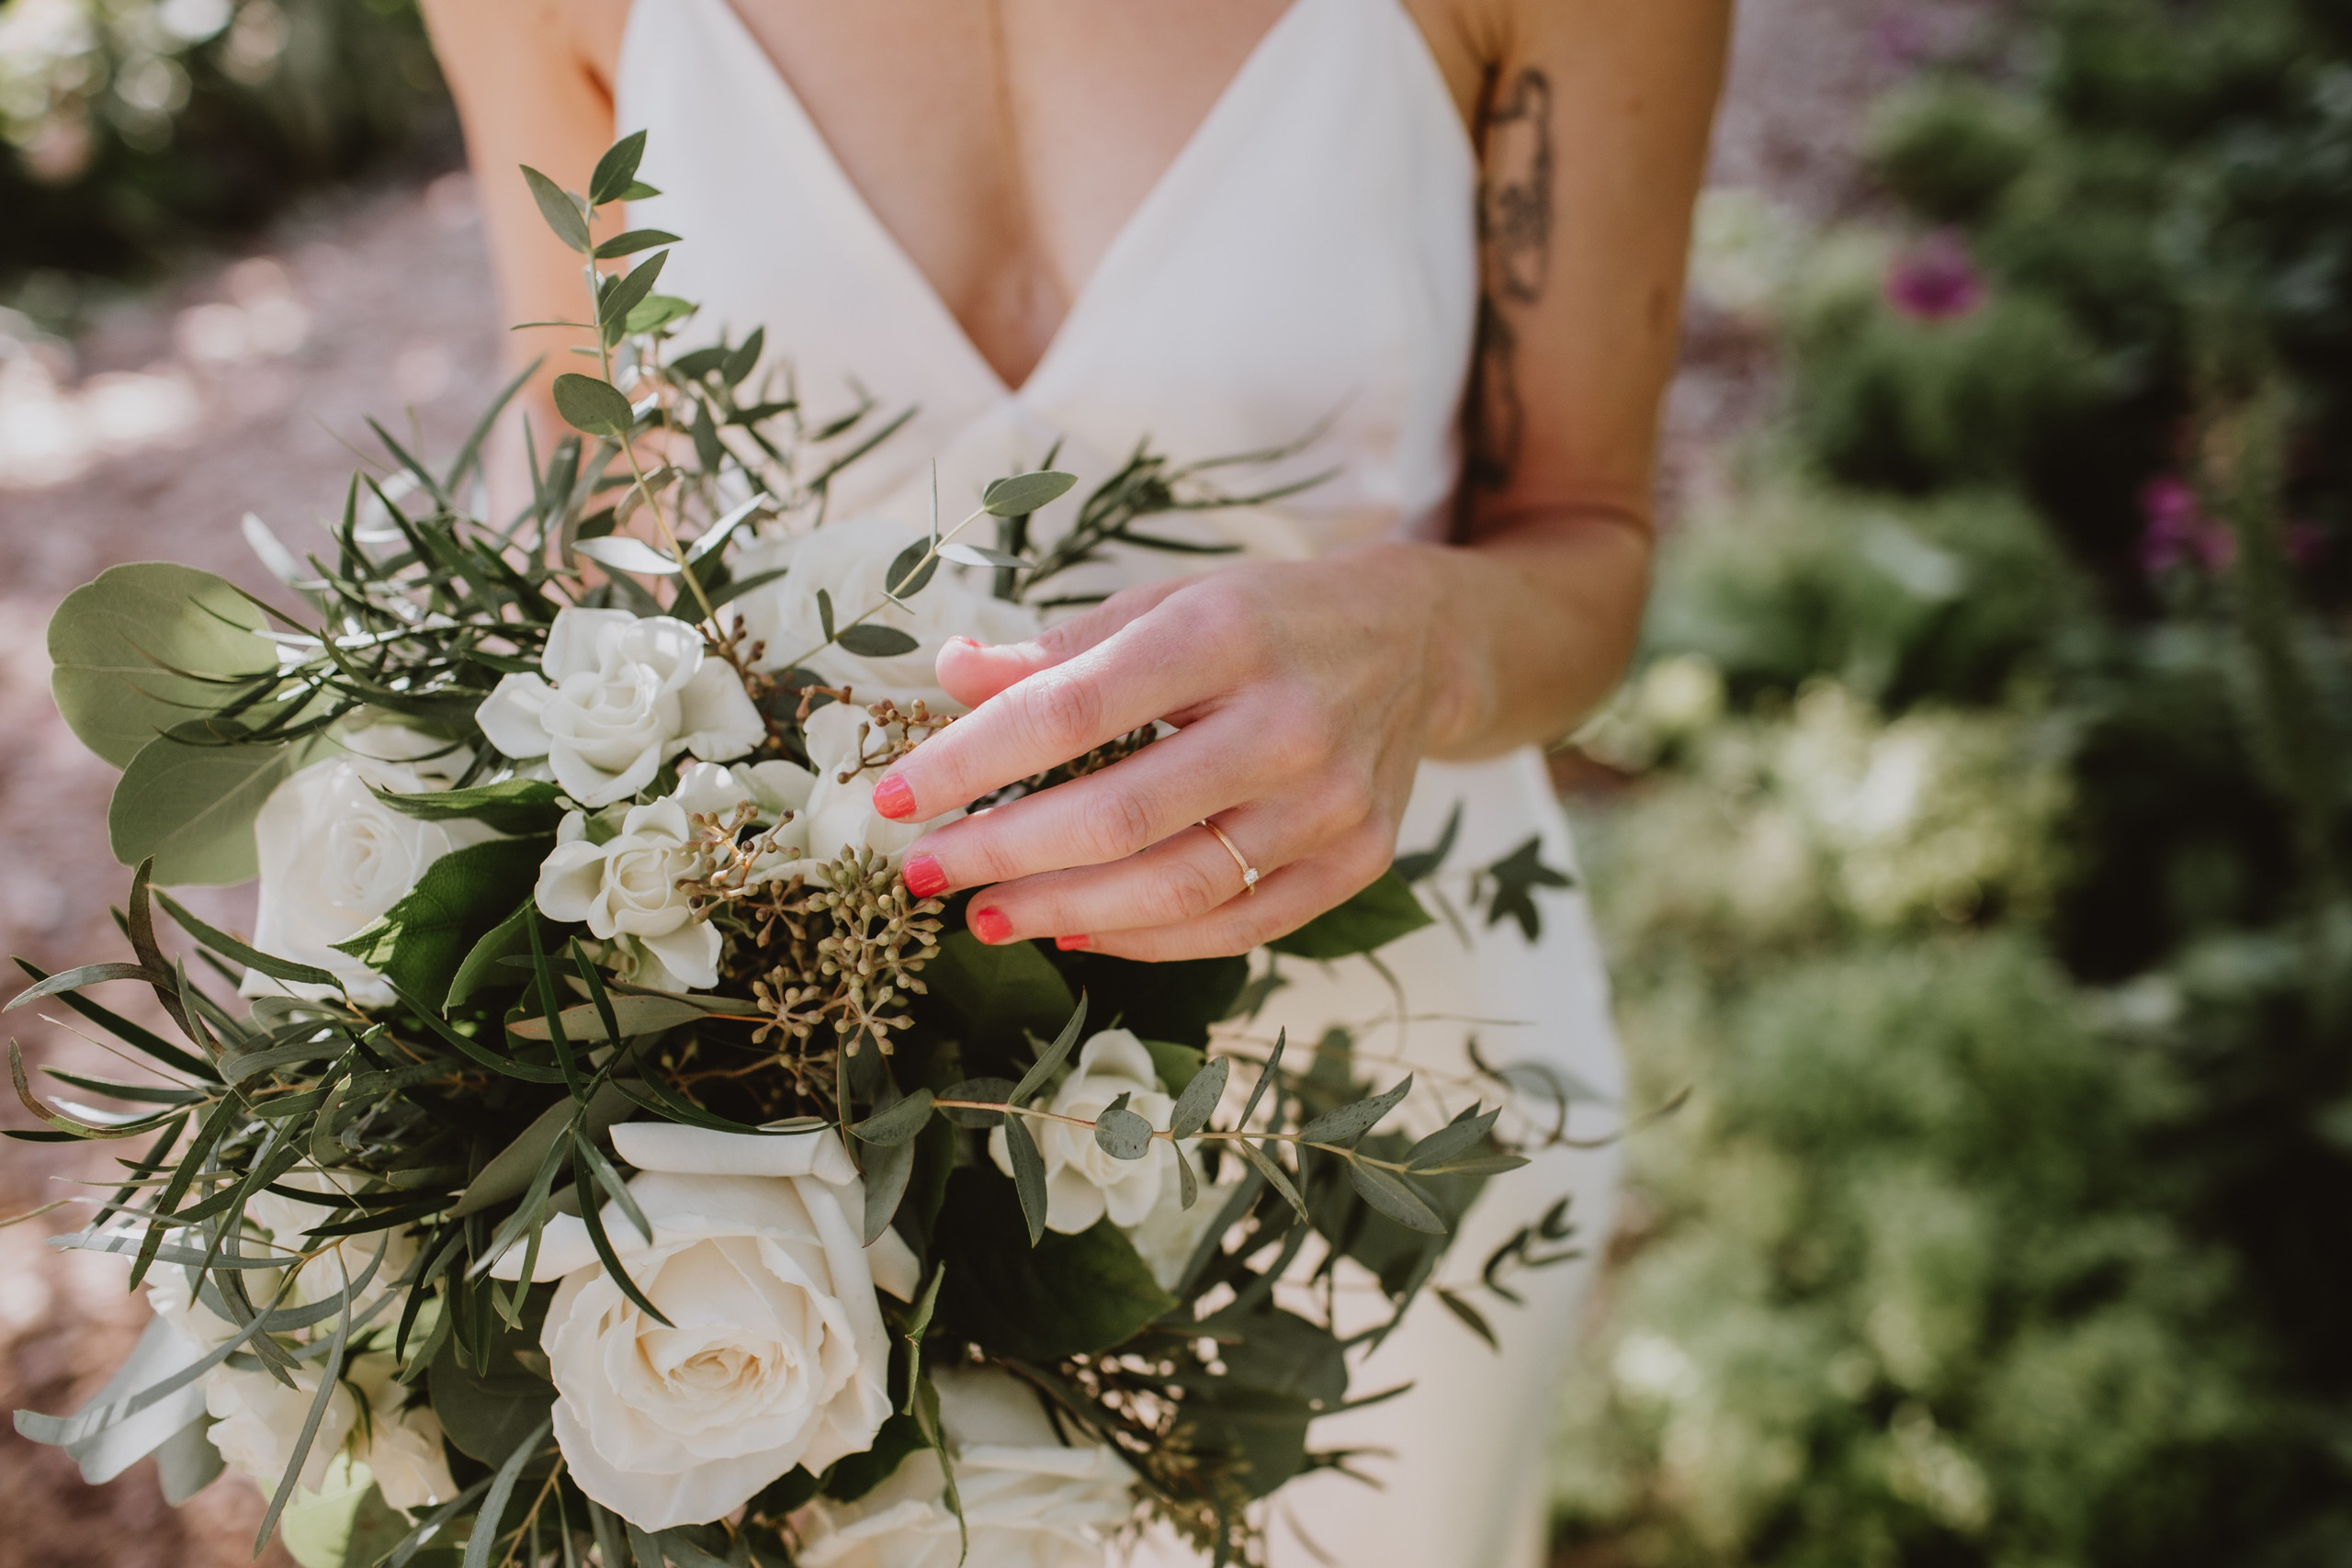 Minimalist Bouquet Inspo with white floral and a variety of greens.